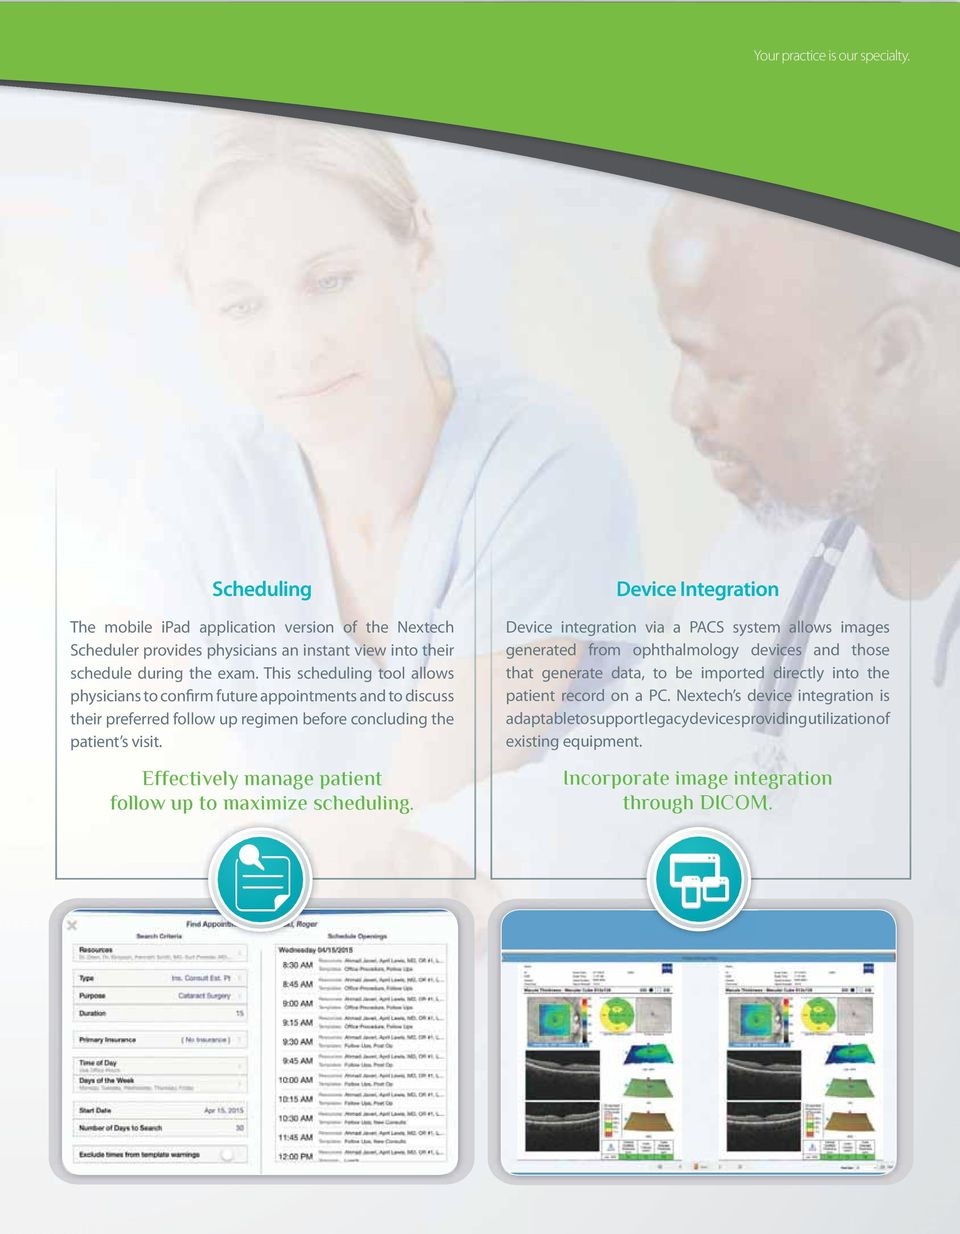 Effectively manage patient follow up to maximize scheduling.